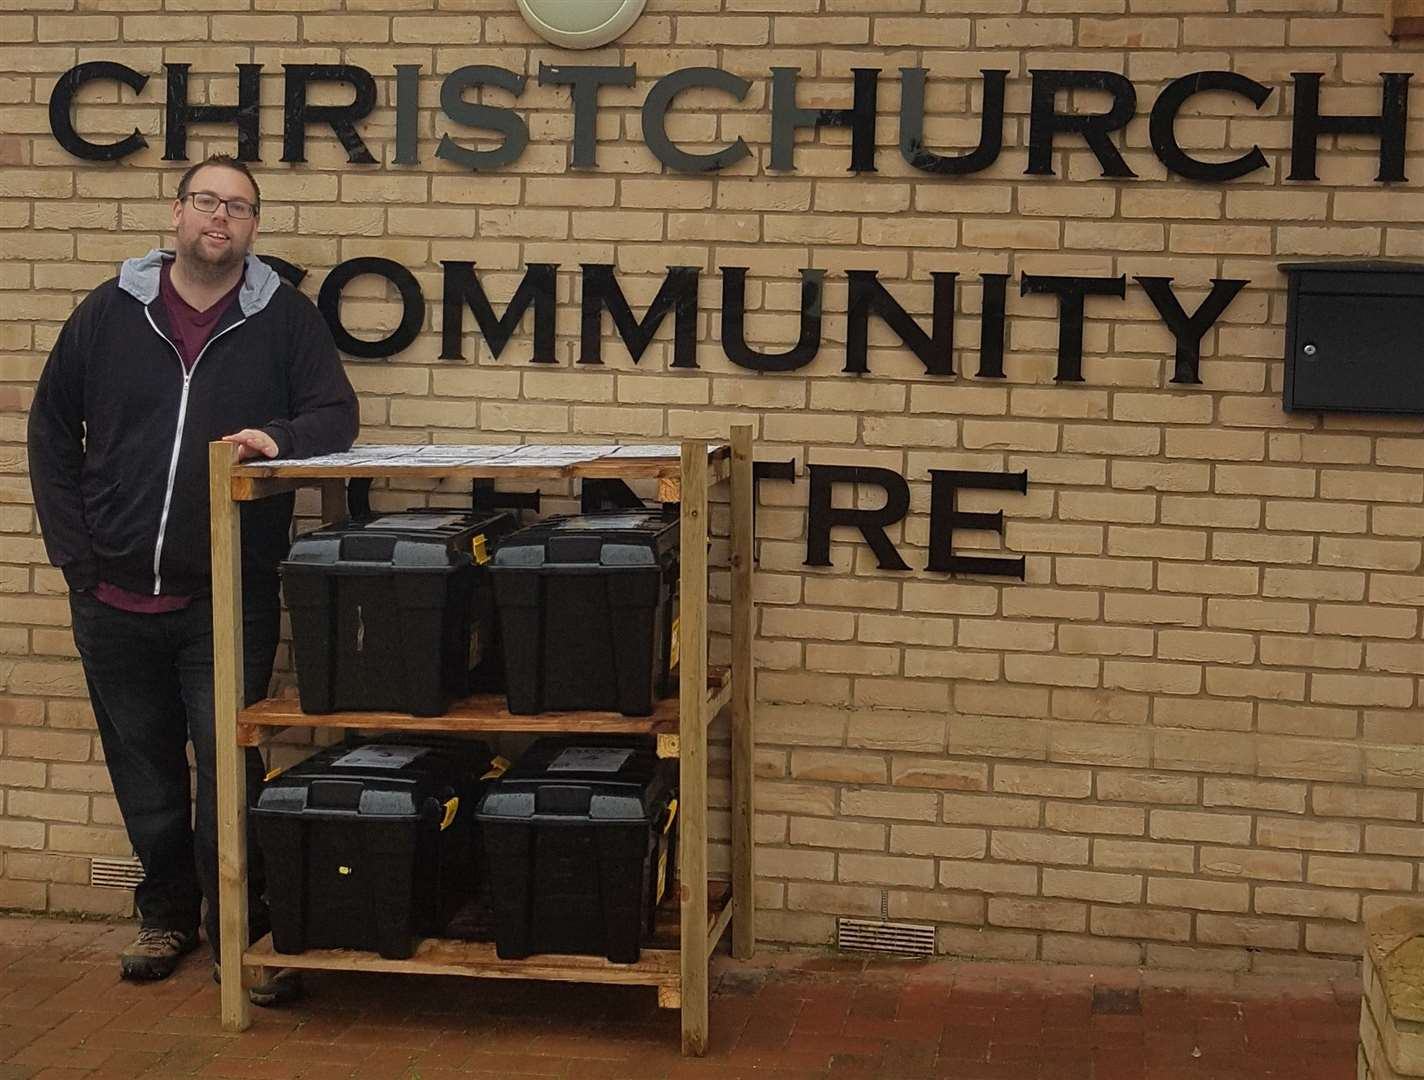 Nate Landsell has built four specialist recycling hubs to help Christchurch villagers be more environmentally friendly. (26917038)